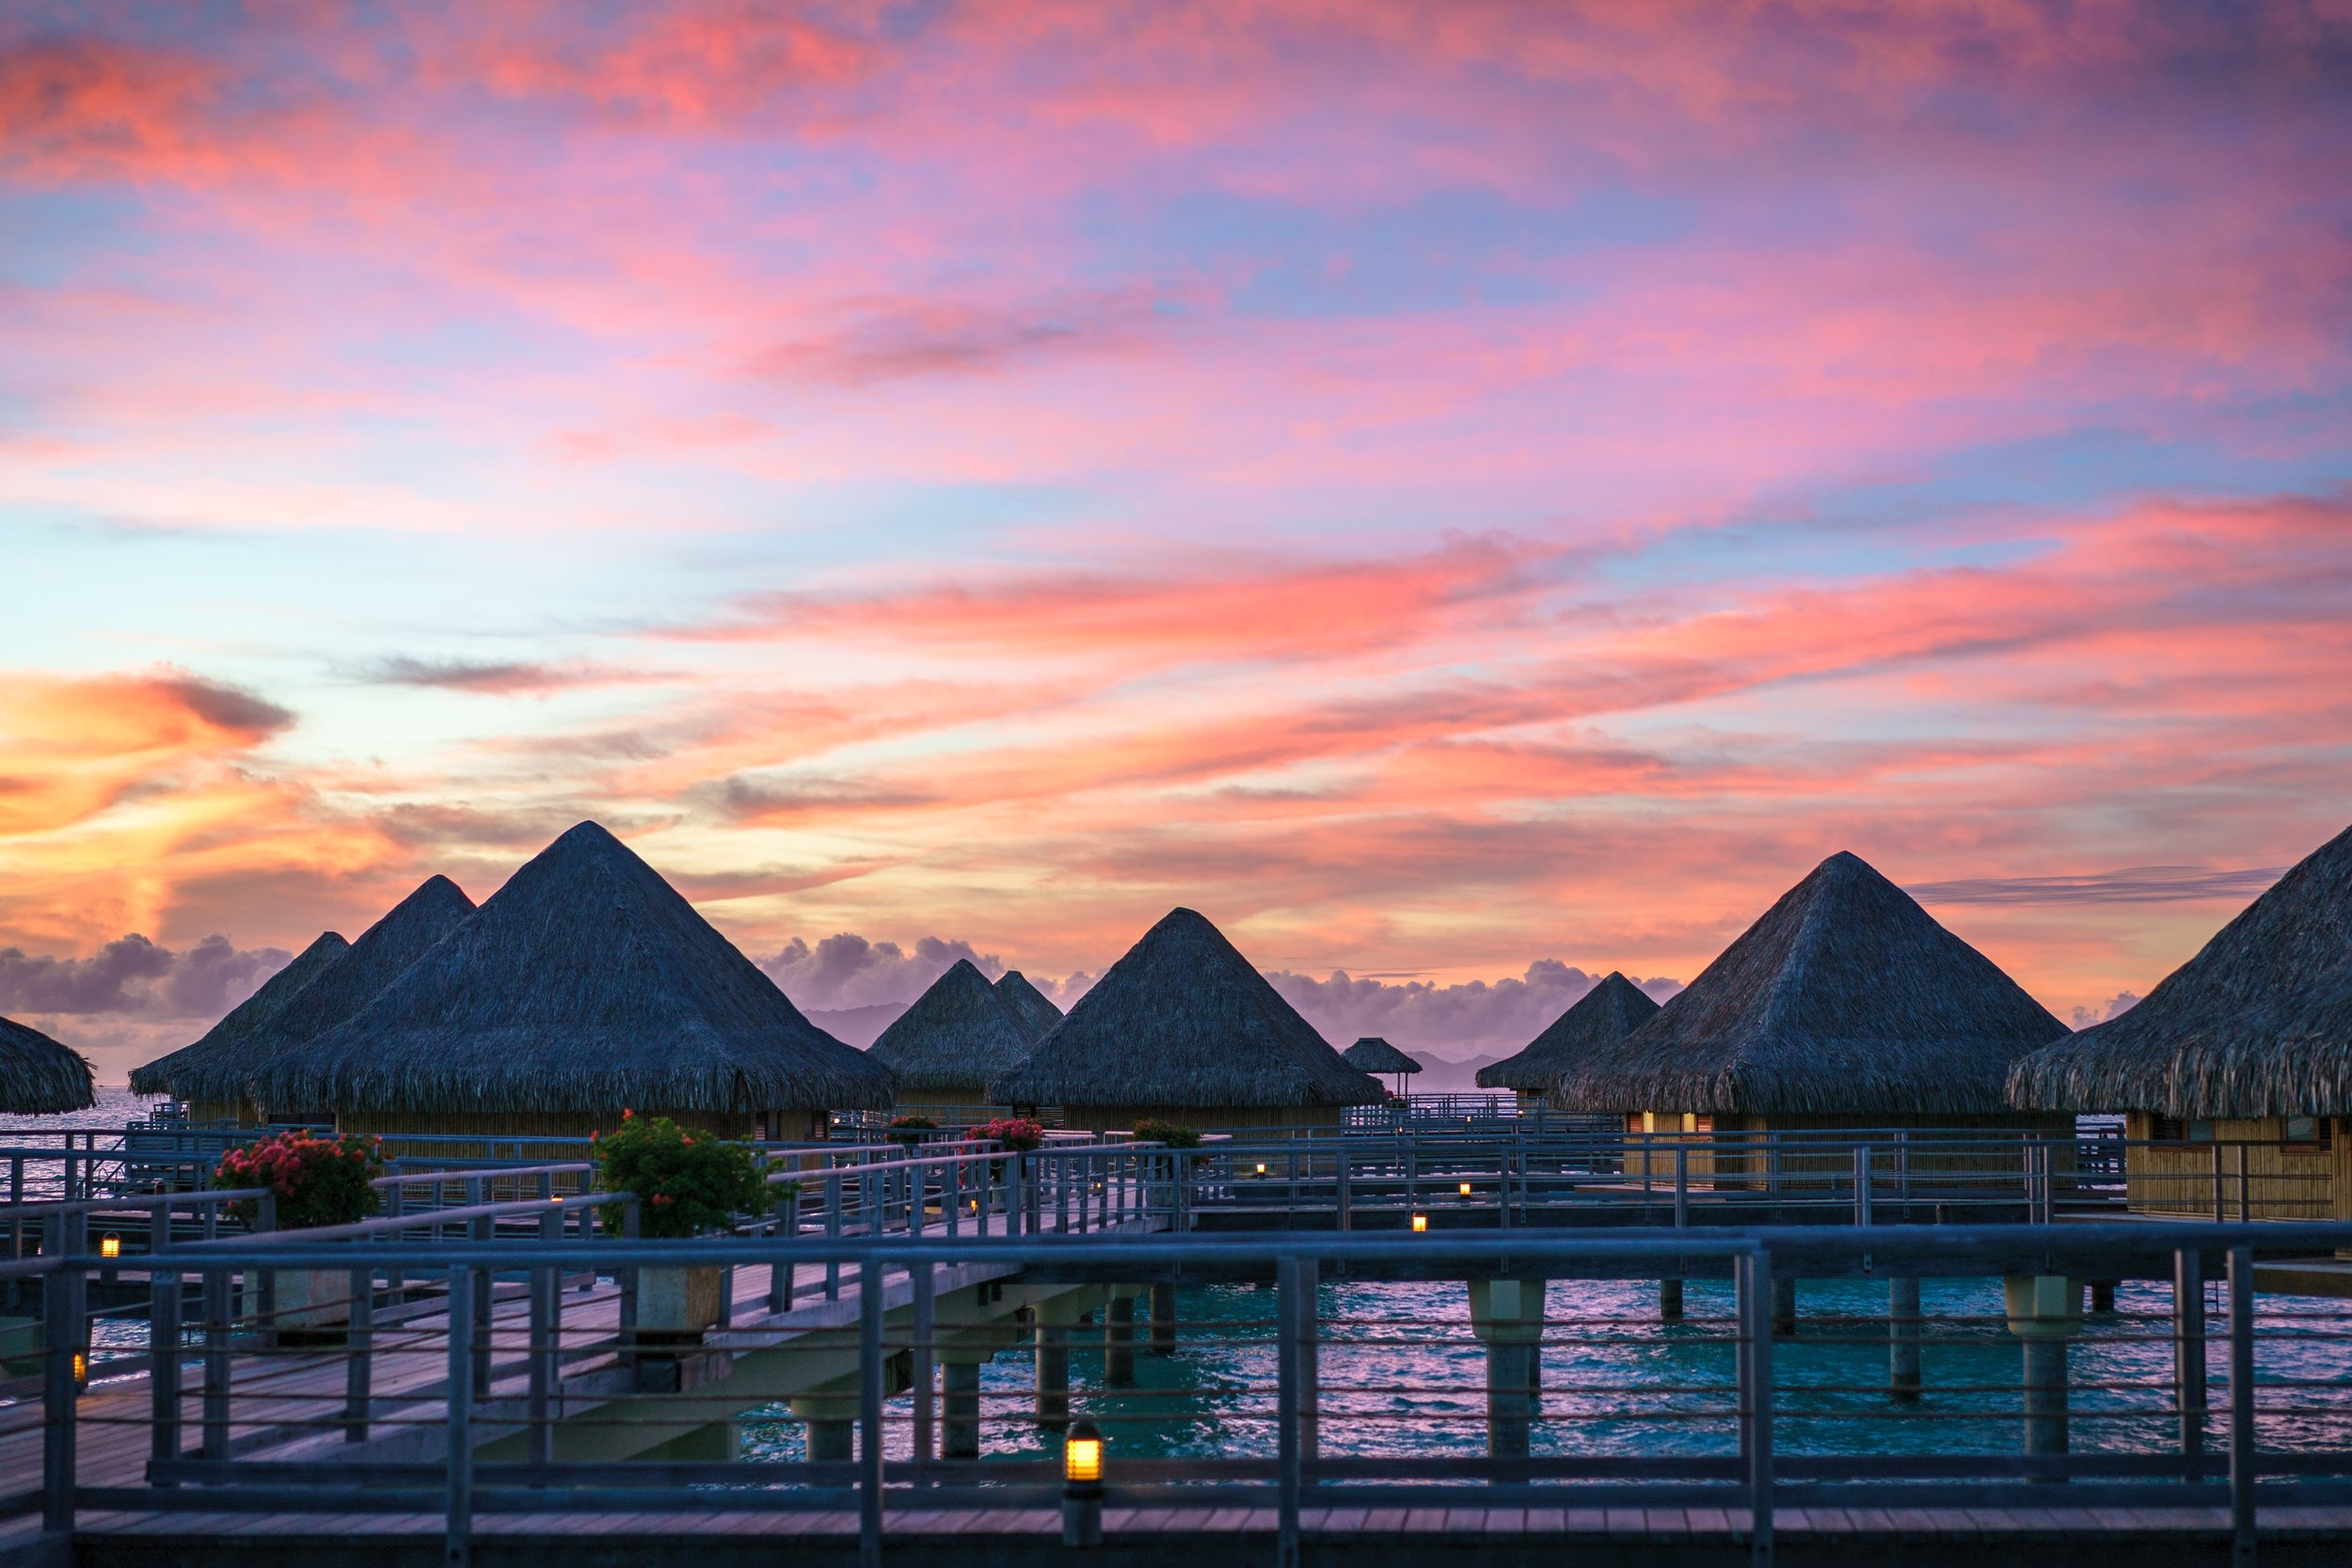 Bora Bora is one of the best places to visit for a romantic getaway.